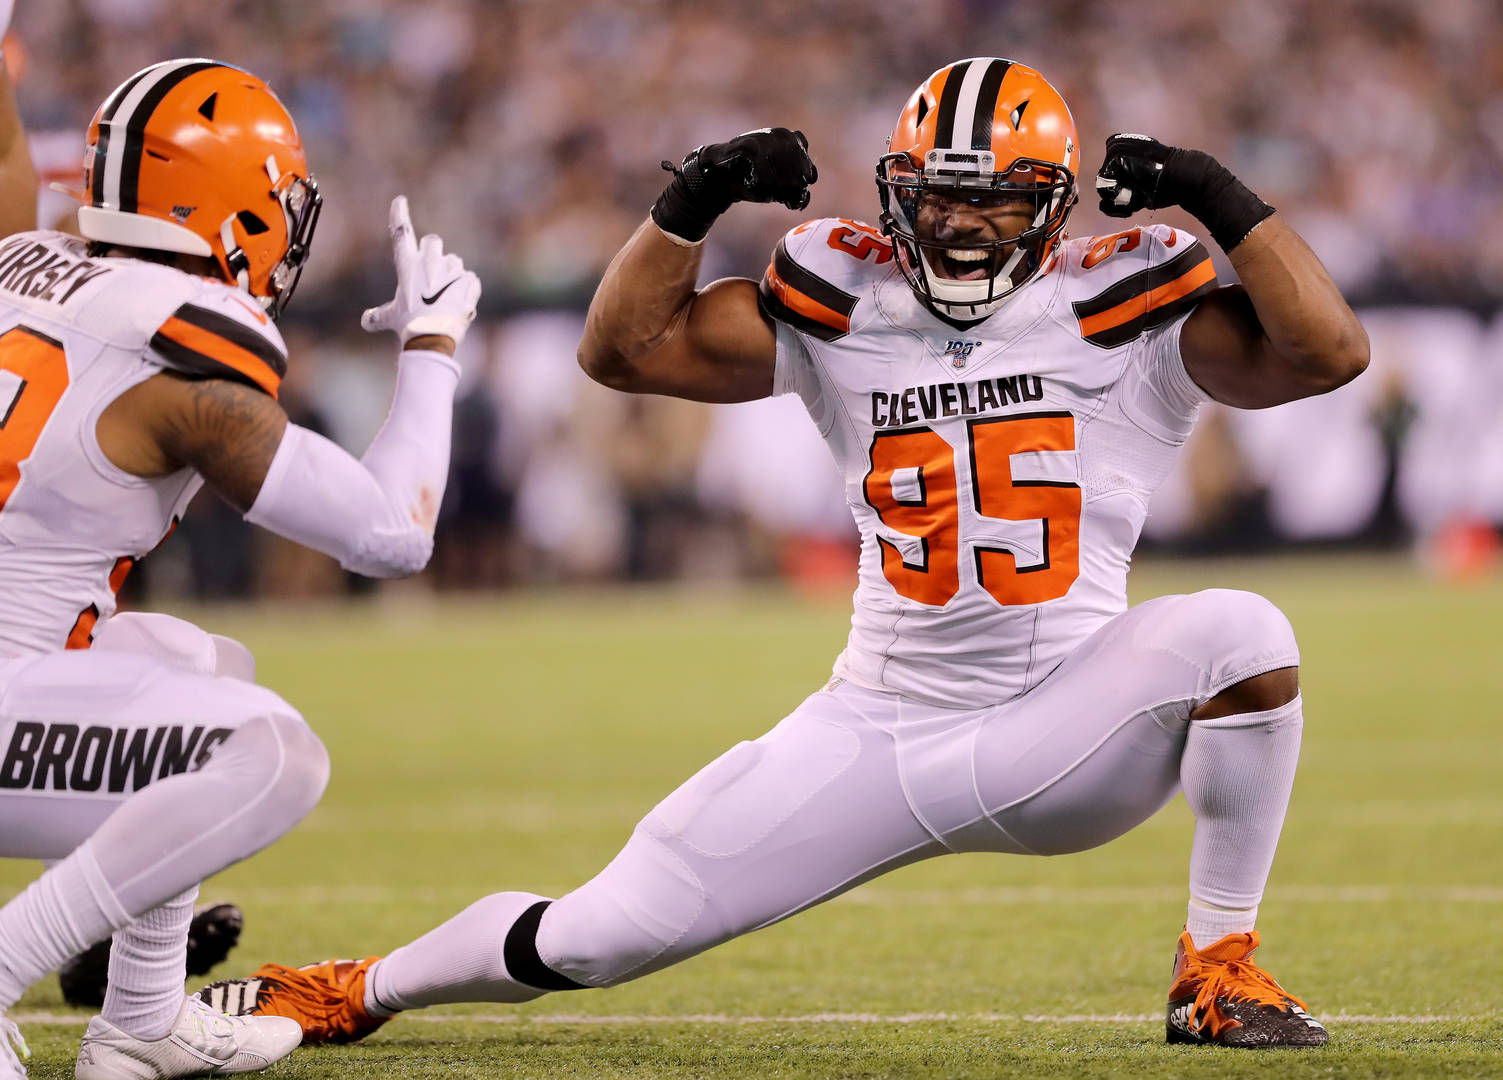 Myles Garrett's extension with Browns includes $100M guaranteed, most for defensive player